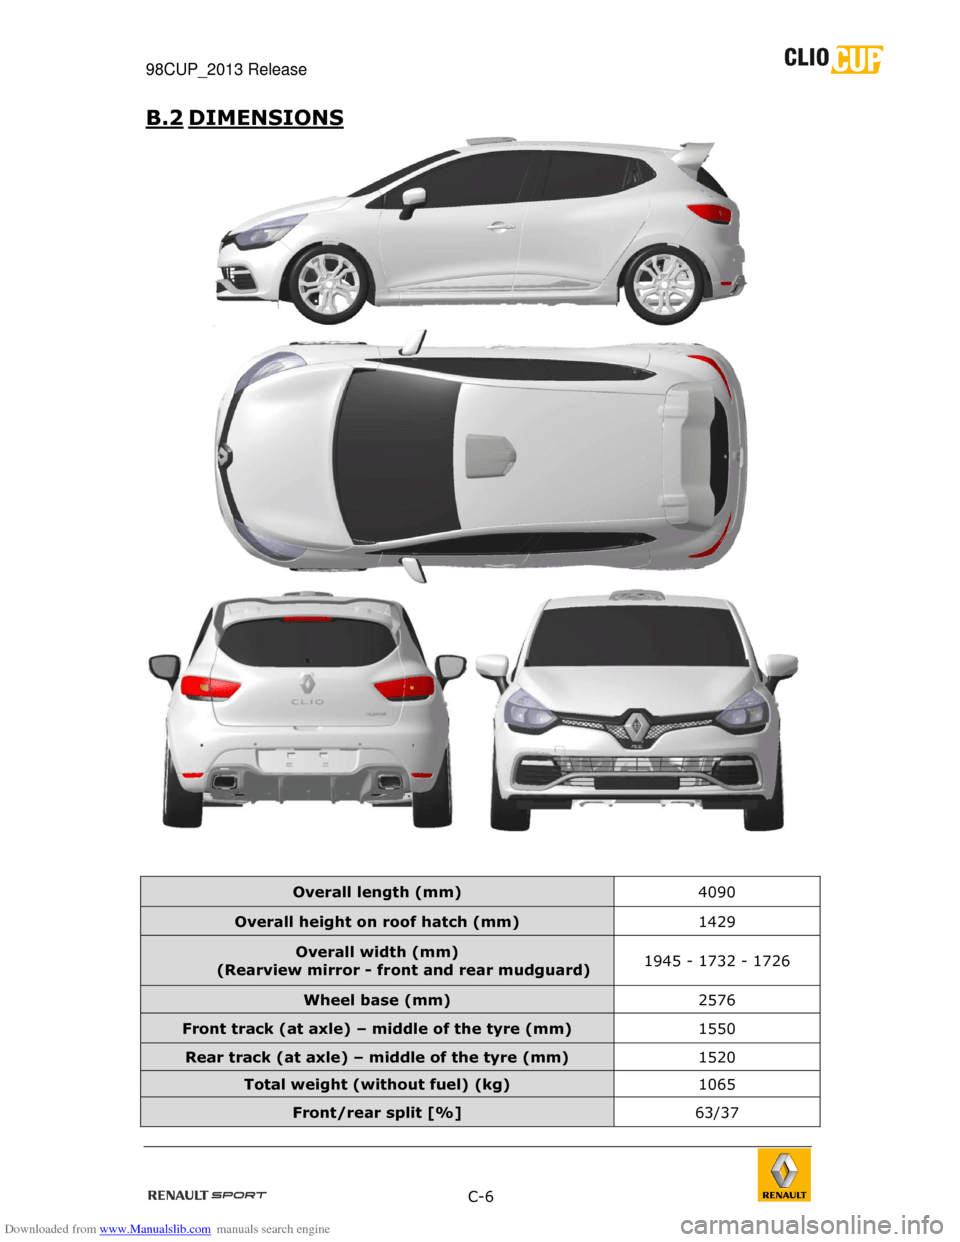 medium resolution of mb romanian clio x98 clio pdf manual large database auto pdf free reading 56k modems model renault clio pdf owner user guides are not affiliated with